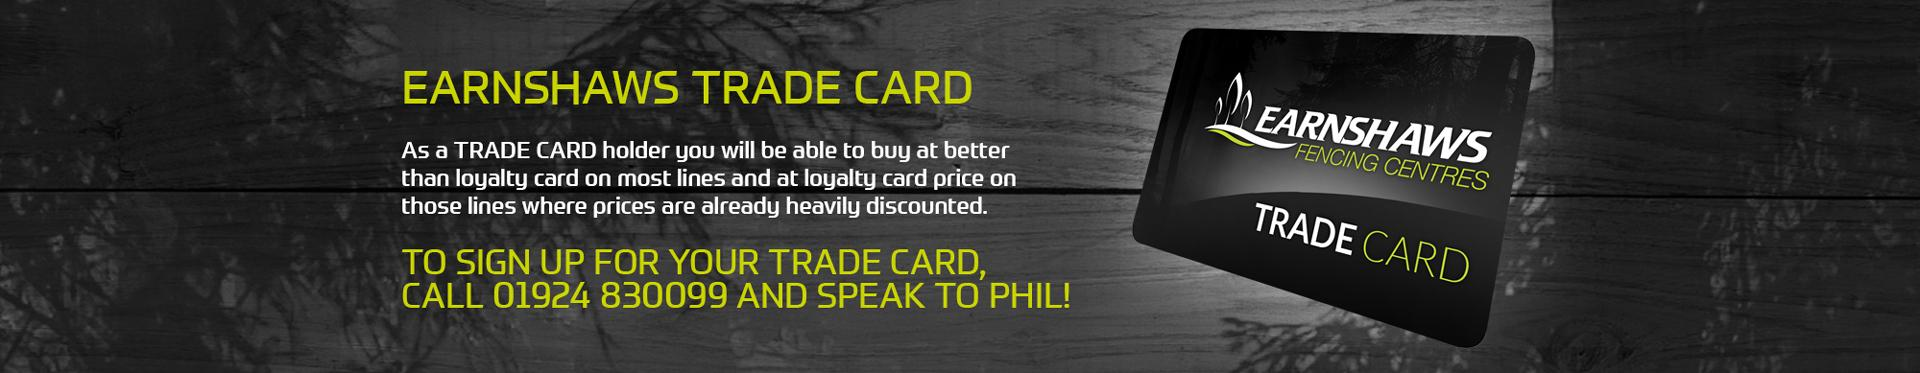 Earnshaws Trade Card